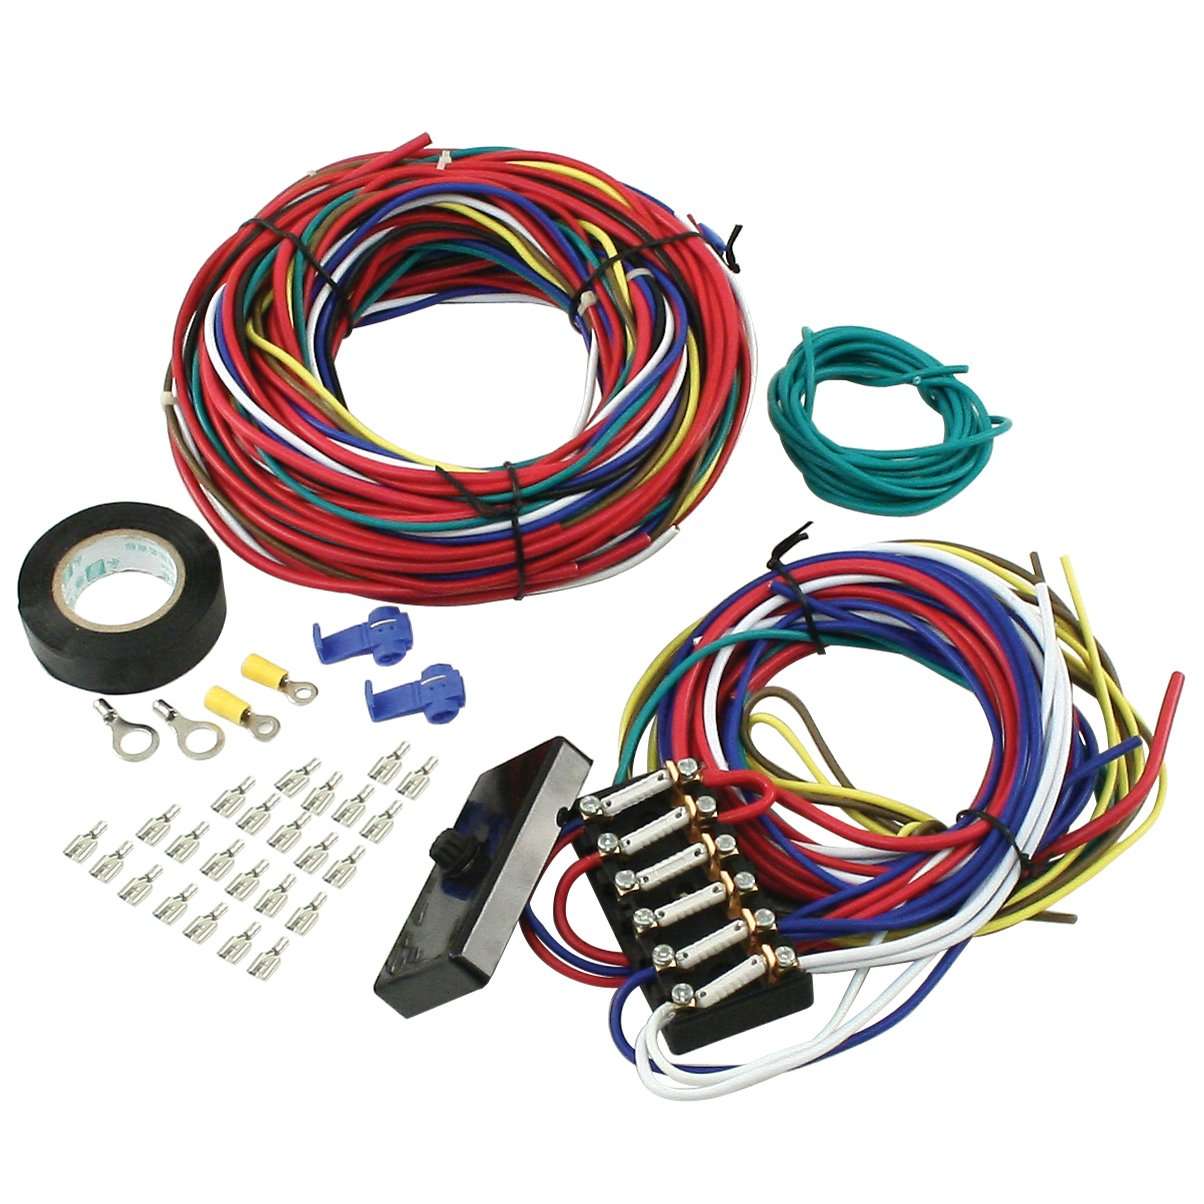 712Fyt3MSiL._SL1204_ amazon com empi 00 9466 0 wire loom kit, vw buggy, sand rail vw bug painless wiring harness at mifinder.co